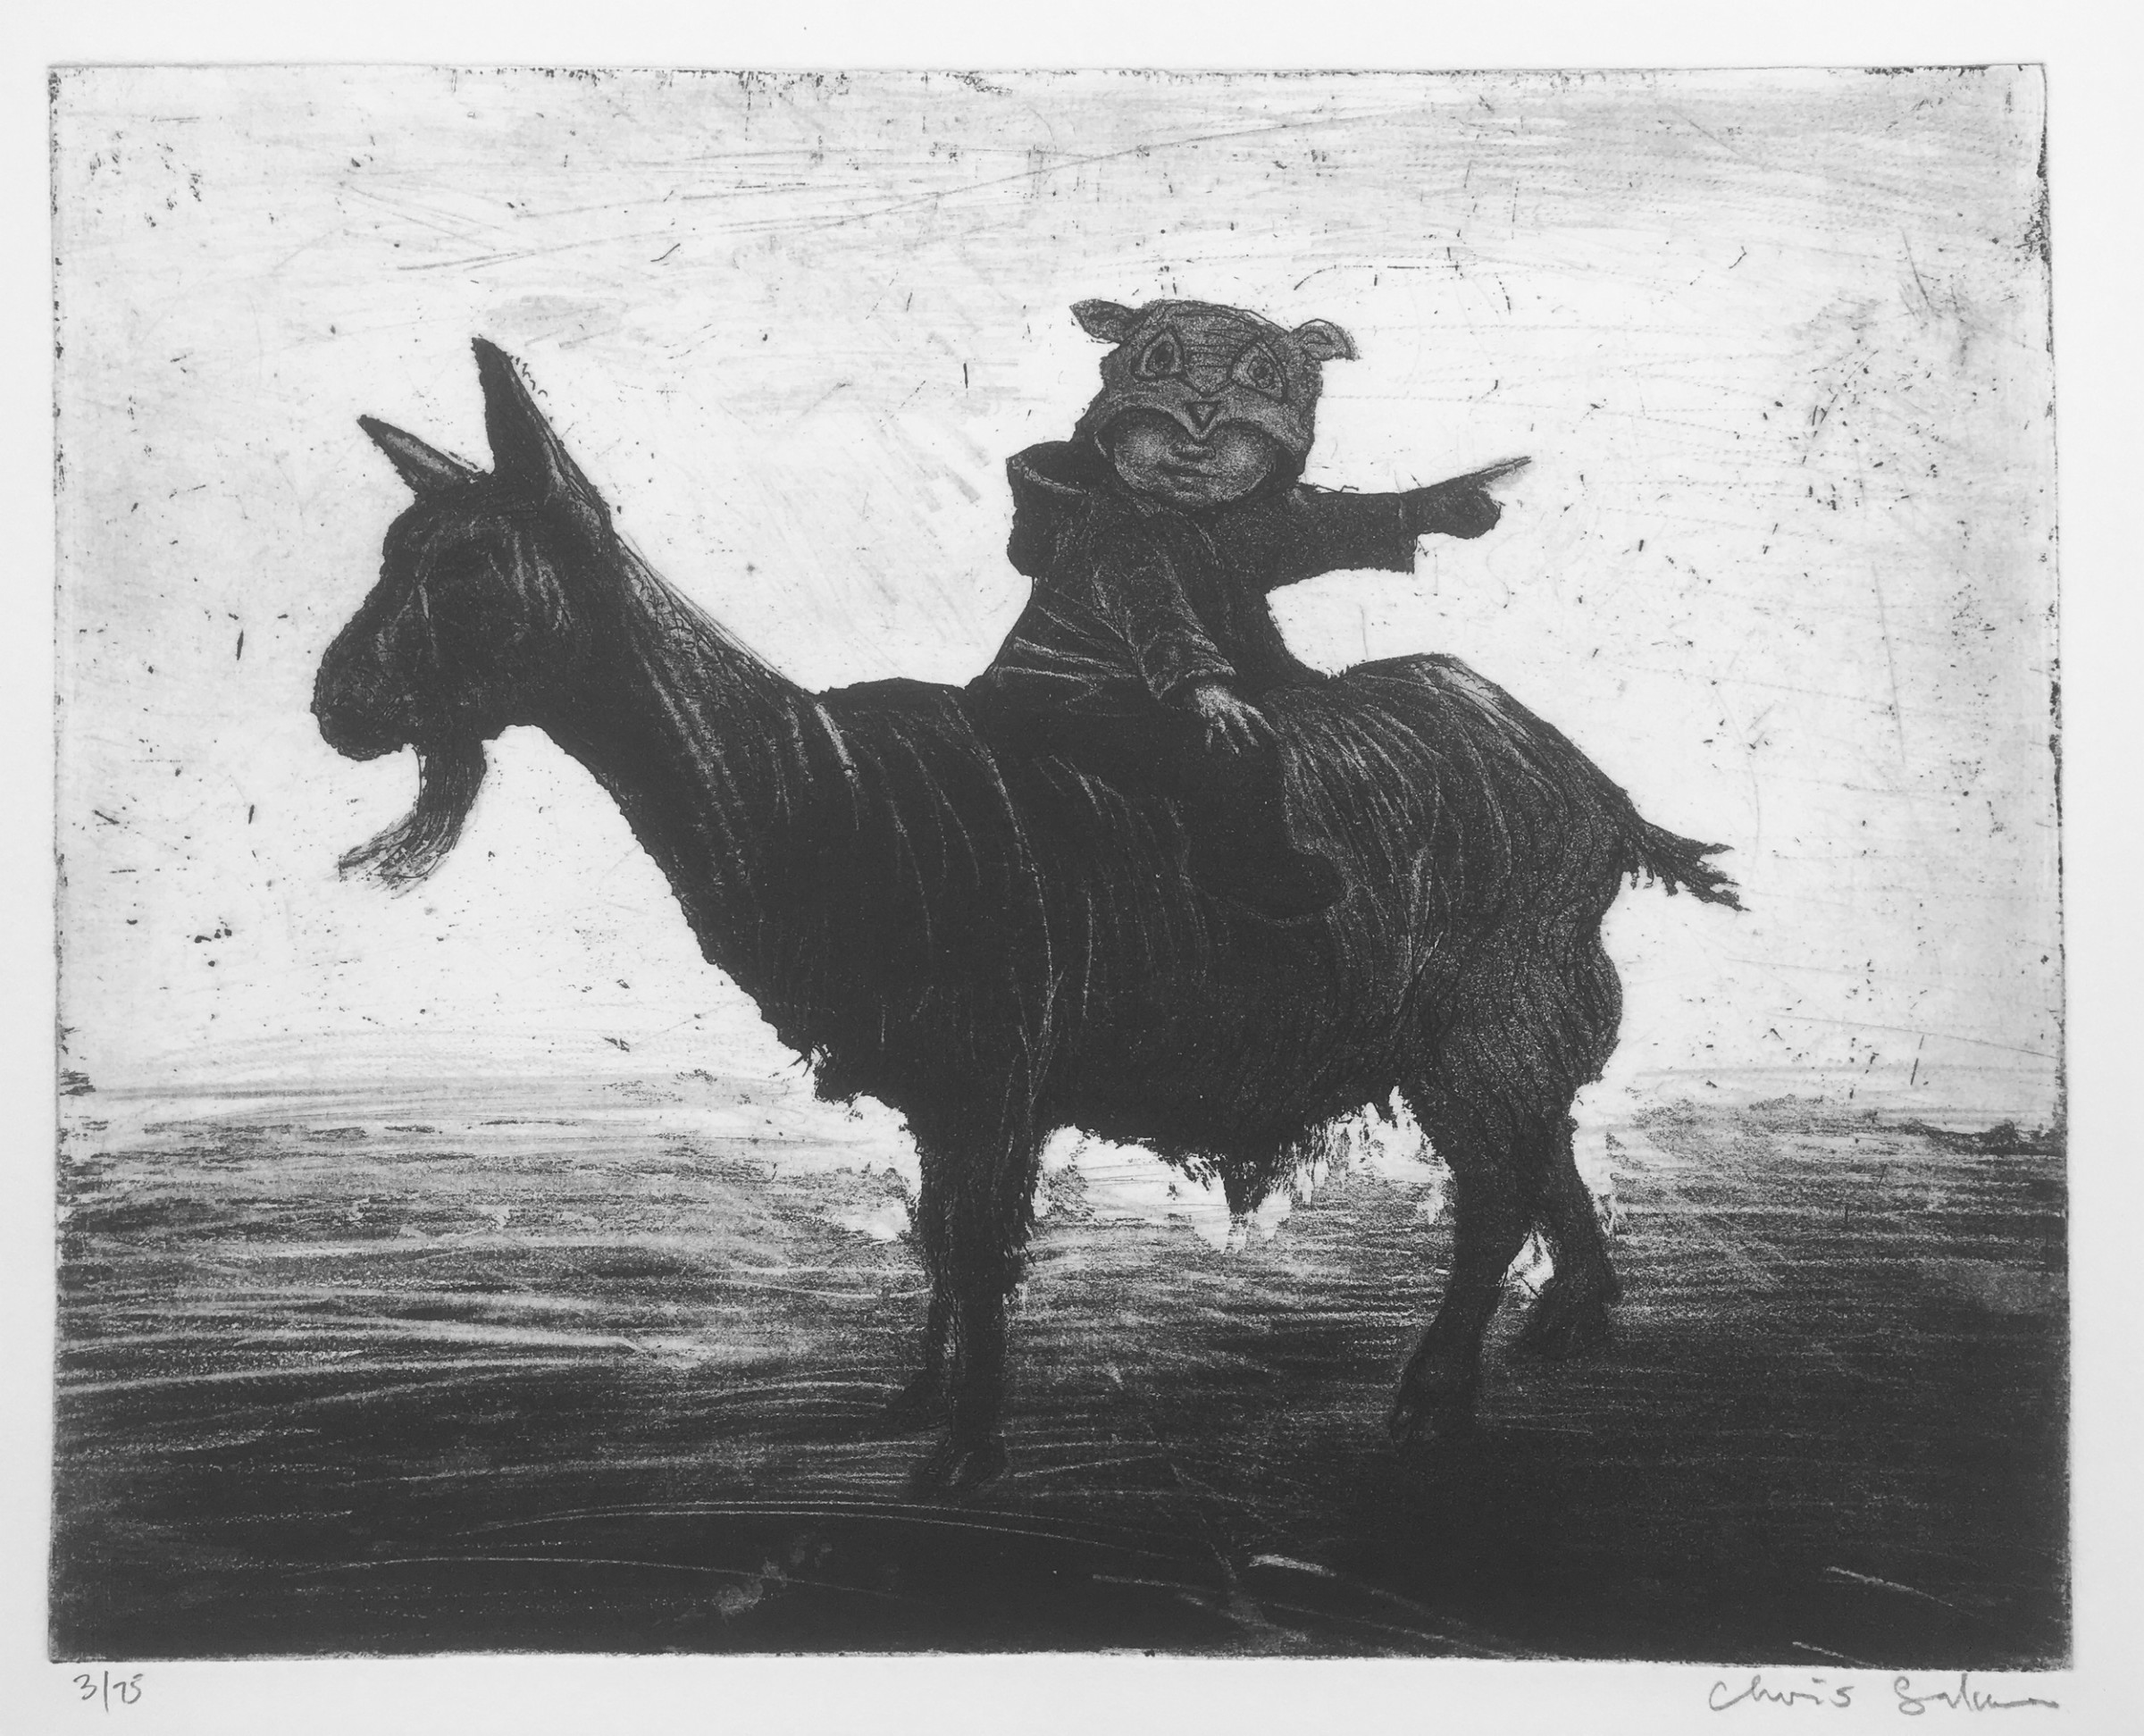 "<span class=""link fancybox-details-link""><a href=""/exhibitions/17/works/image_standalone792/"">View Detail Page</a></span><p><strong>Chris Salmon</strong></p><p>Goat Rider</p><p>etching, ed of 75</p><p>30 x 40cm</p><p>£195 framed</p><p>£175 unframed</p>"